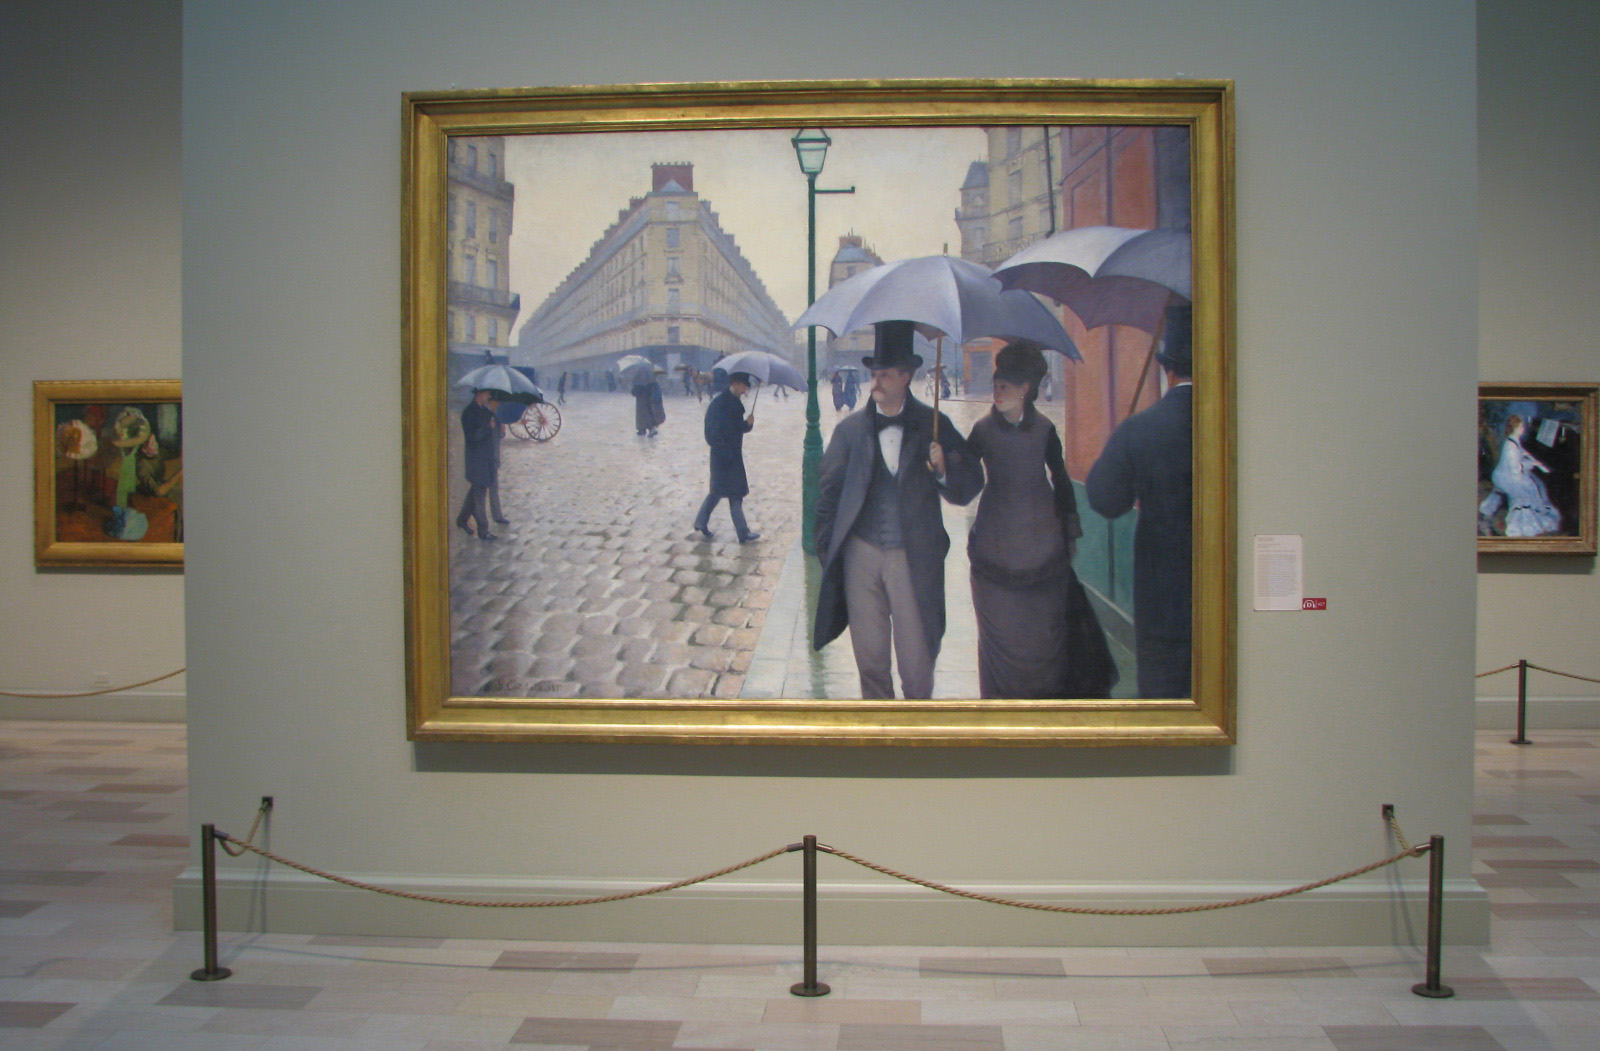 paris street rainy day gustave caillebotte this essay is english photo show the real size of paris street rainy day painting by